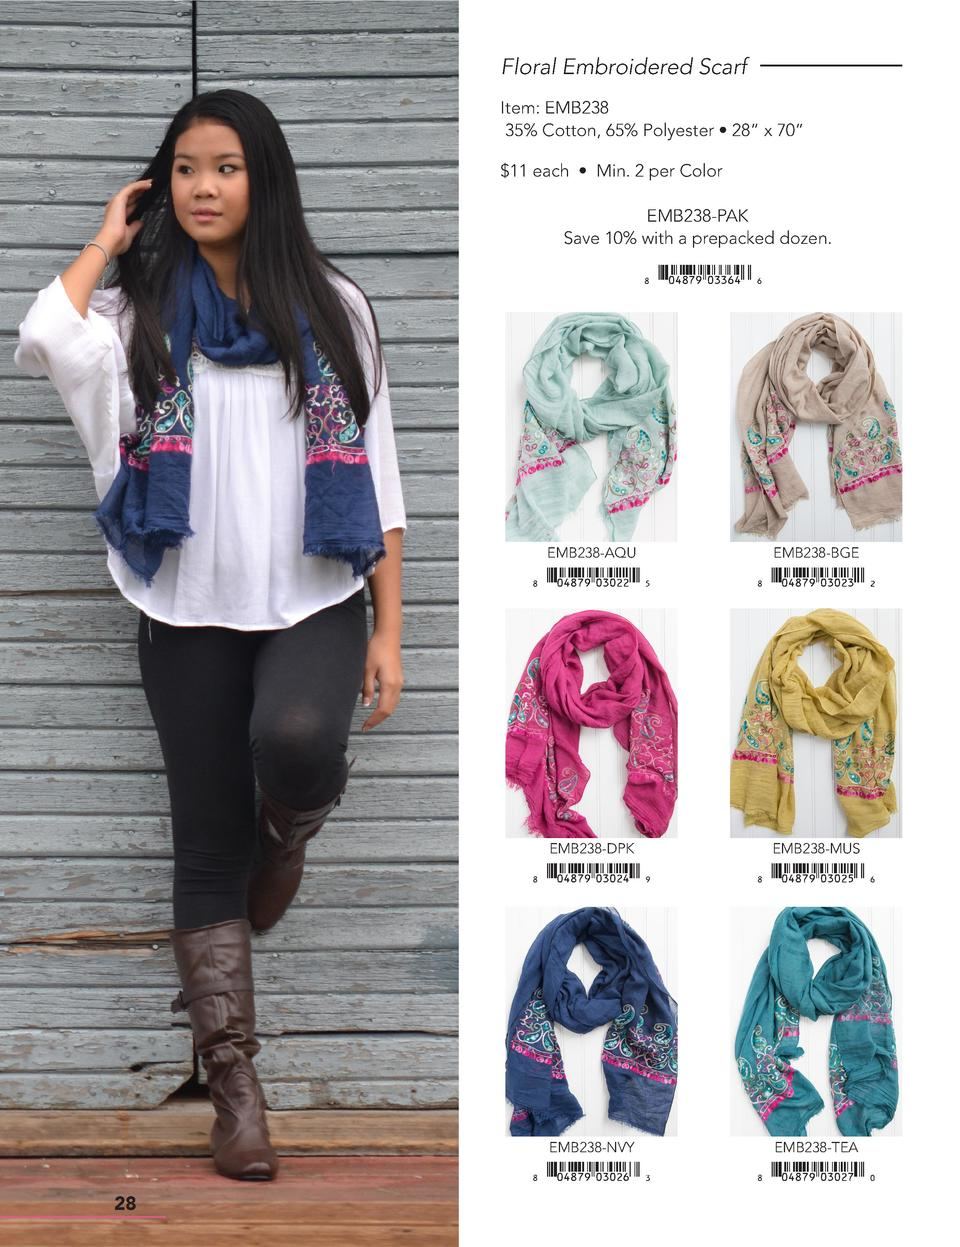 Floral Embroidered Scarf Item  EMB238 35  Cotton, 65  Polyester     28    x 70     11 each     Min. 2 per Color EMB238-PAK...